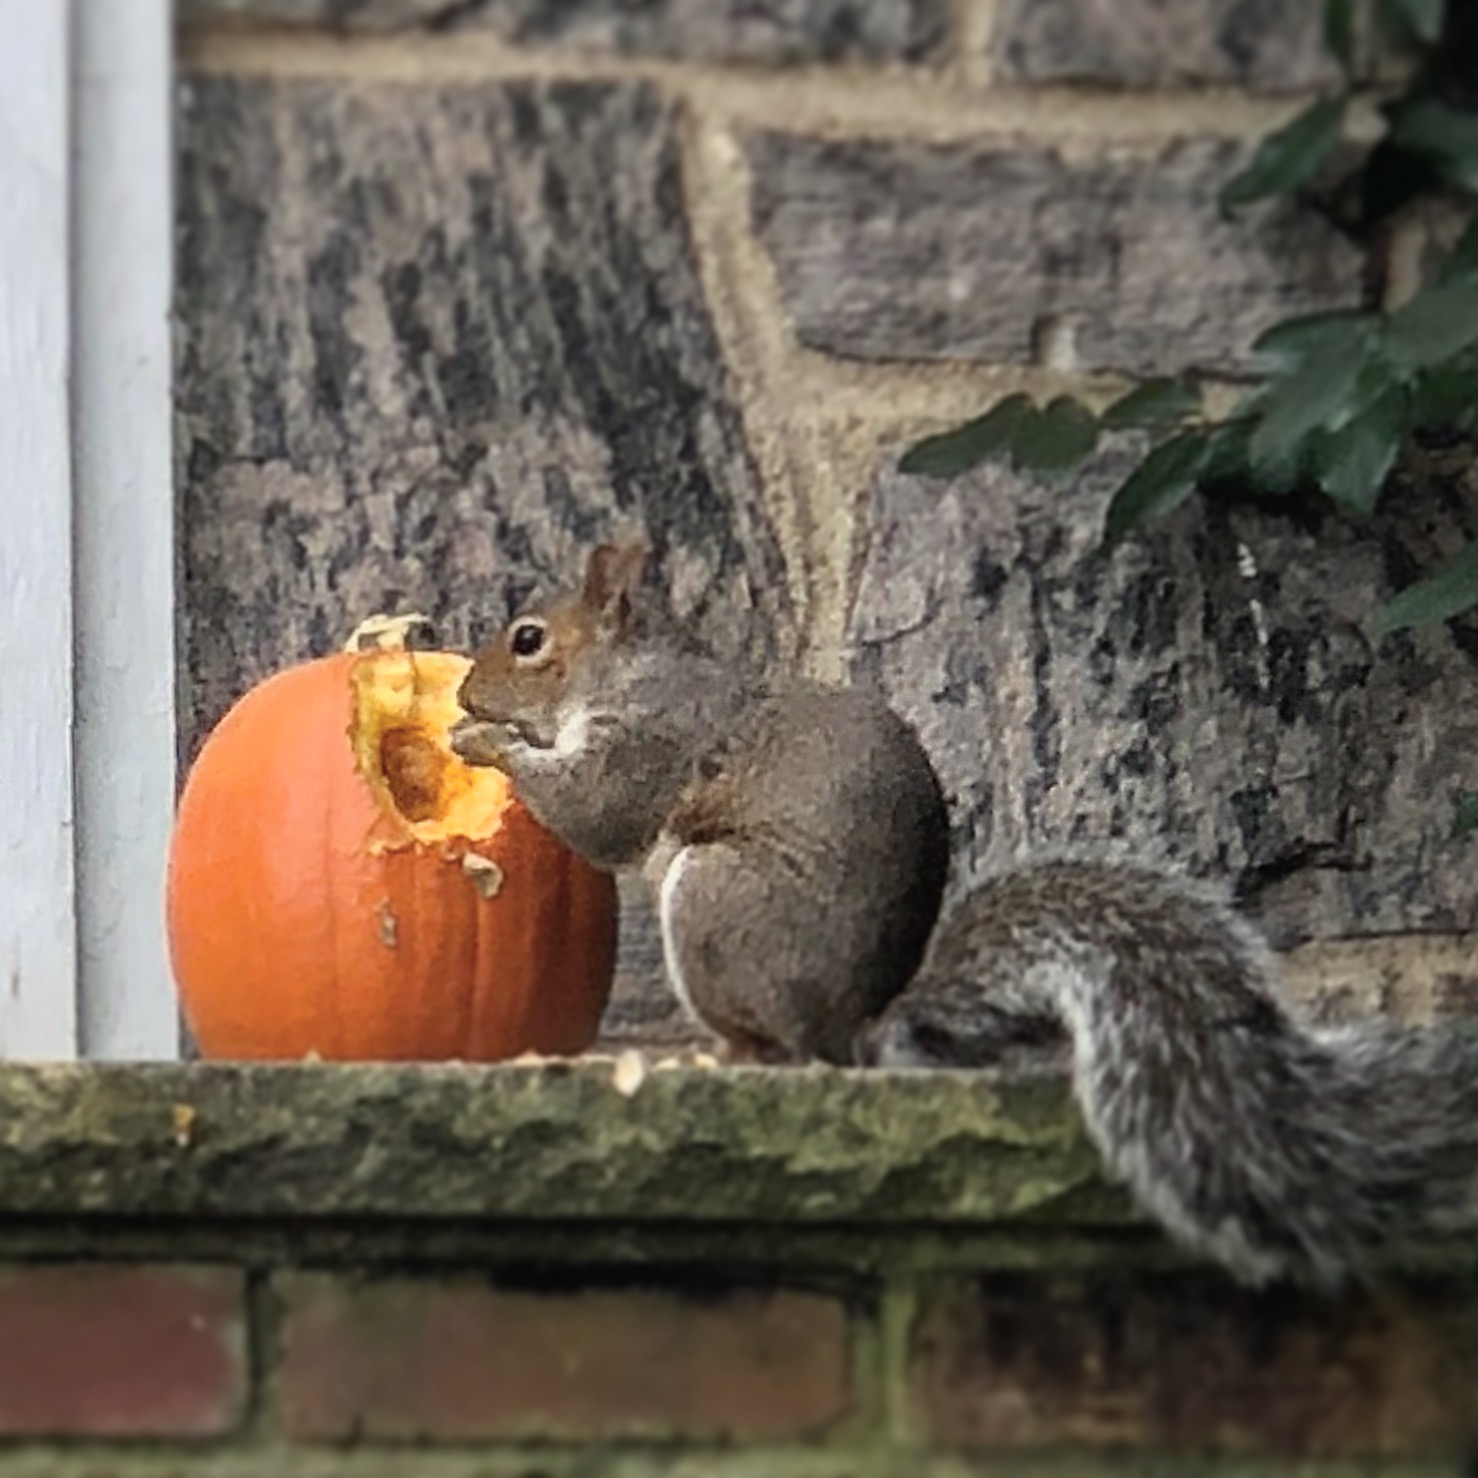 This squirrel was seen making his lunch out of the pumpkin sitting quietly on the front porch in West Brighton. (Staten Island Advance/ Jan Somma-Hammel)